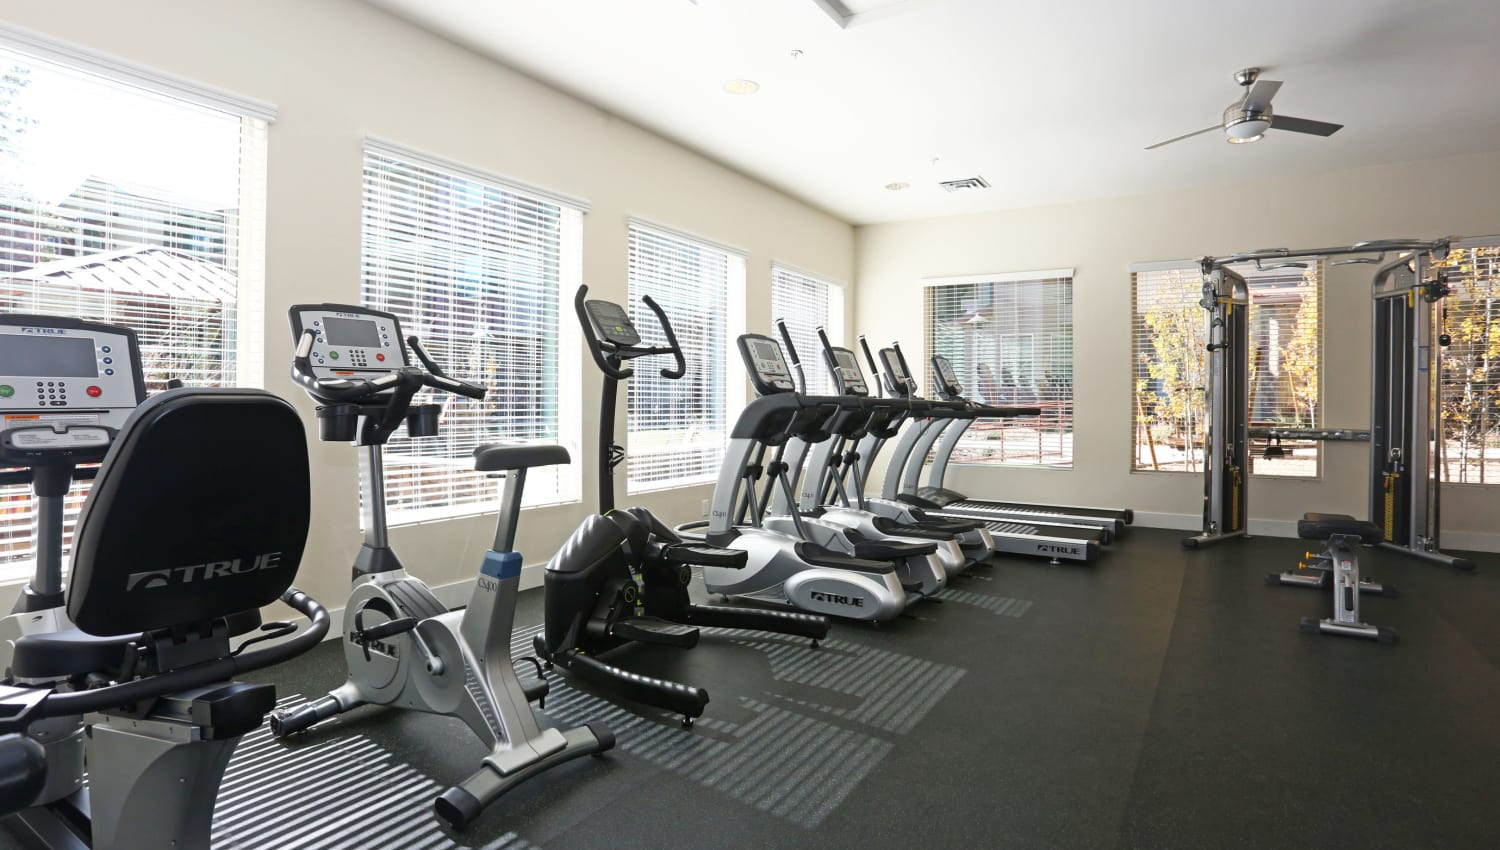 Well-equipped fitness center at Mountain Trail in Flagstaff, Arizona